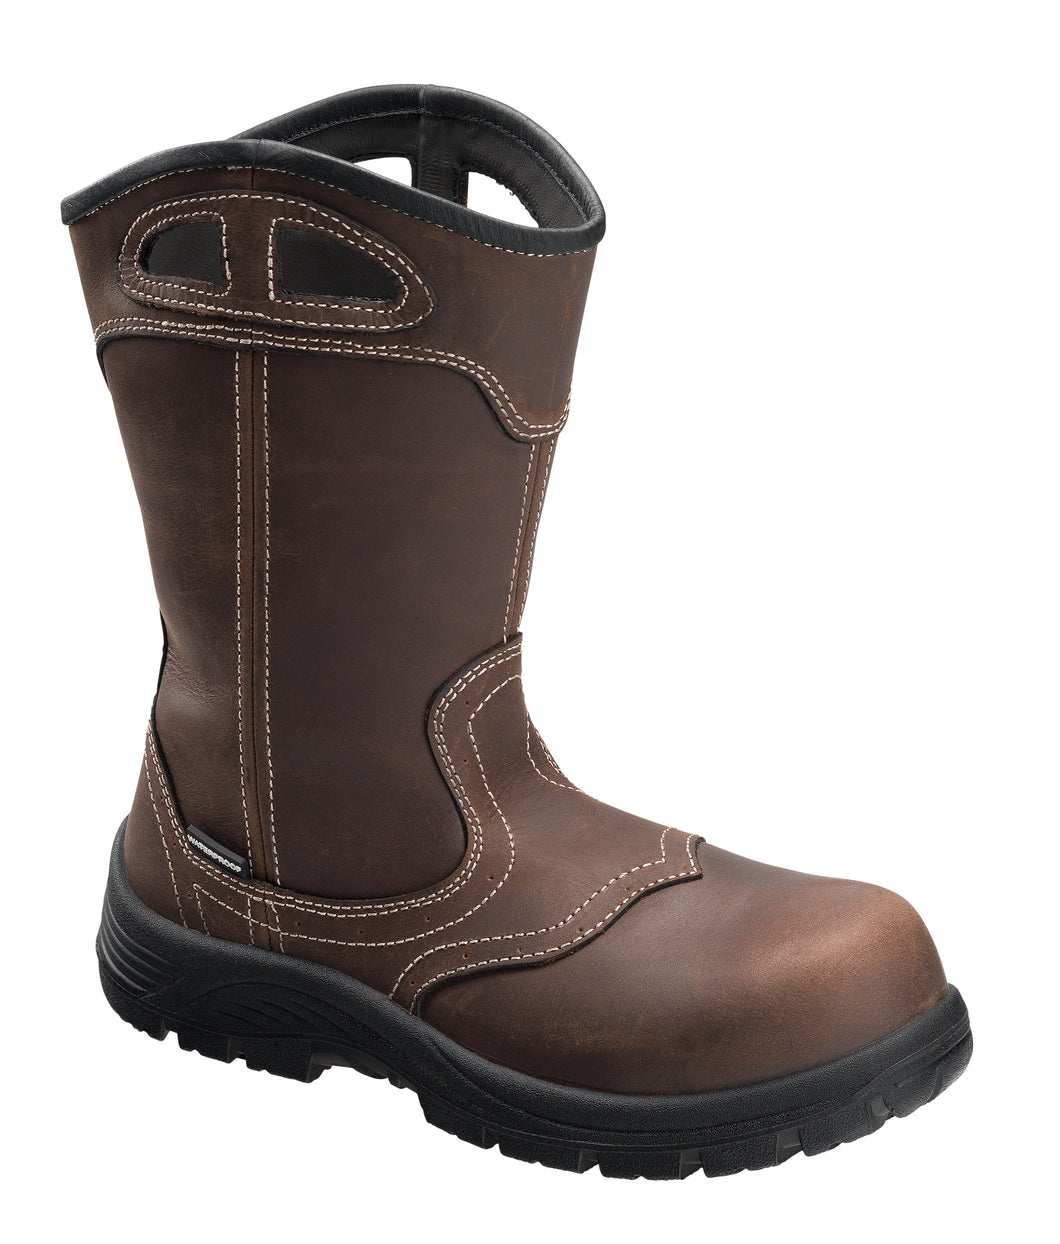 Women's Framer Brown Composite Toe EH WP 10